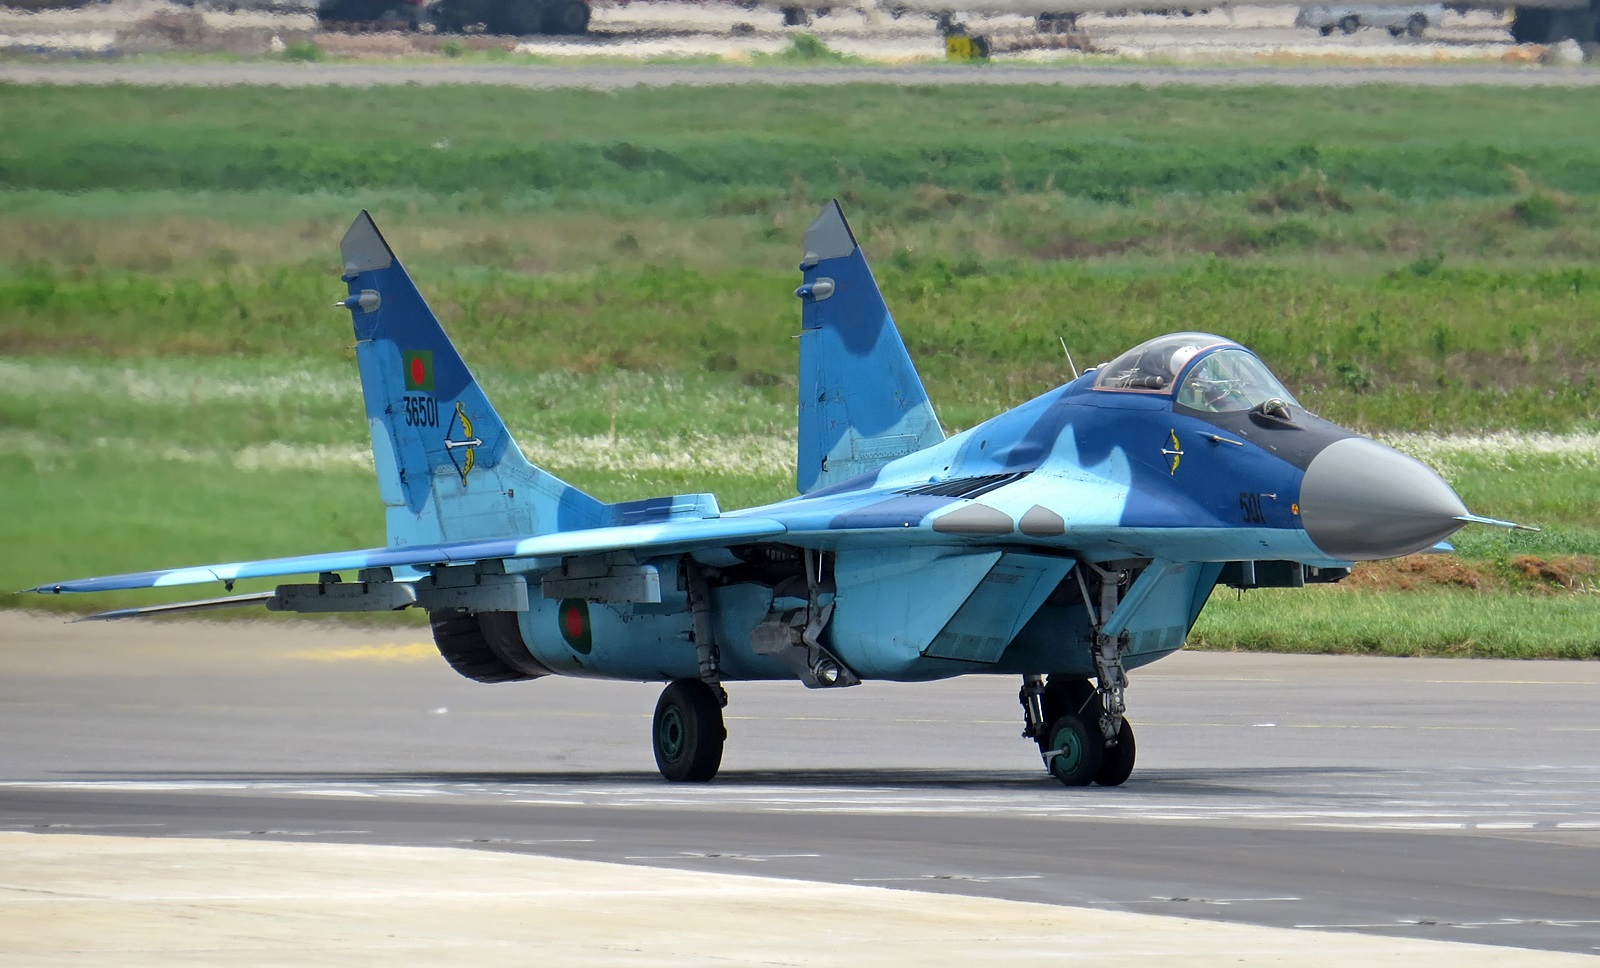 The Secret Is Out: America Purchased 21 Russian MiG-29 Fighters (Here Is What Happenned)